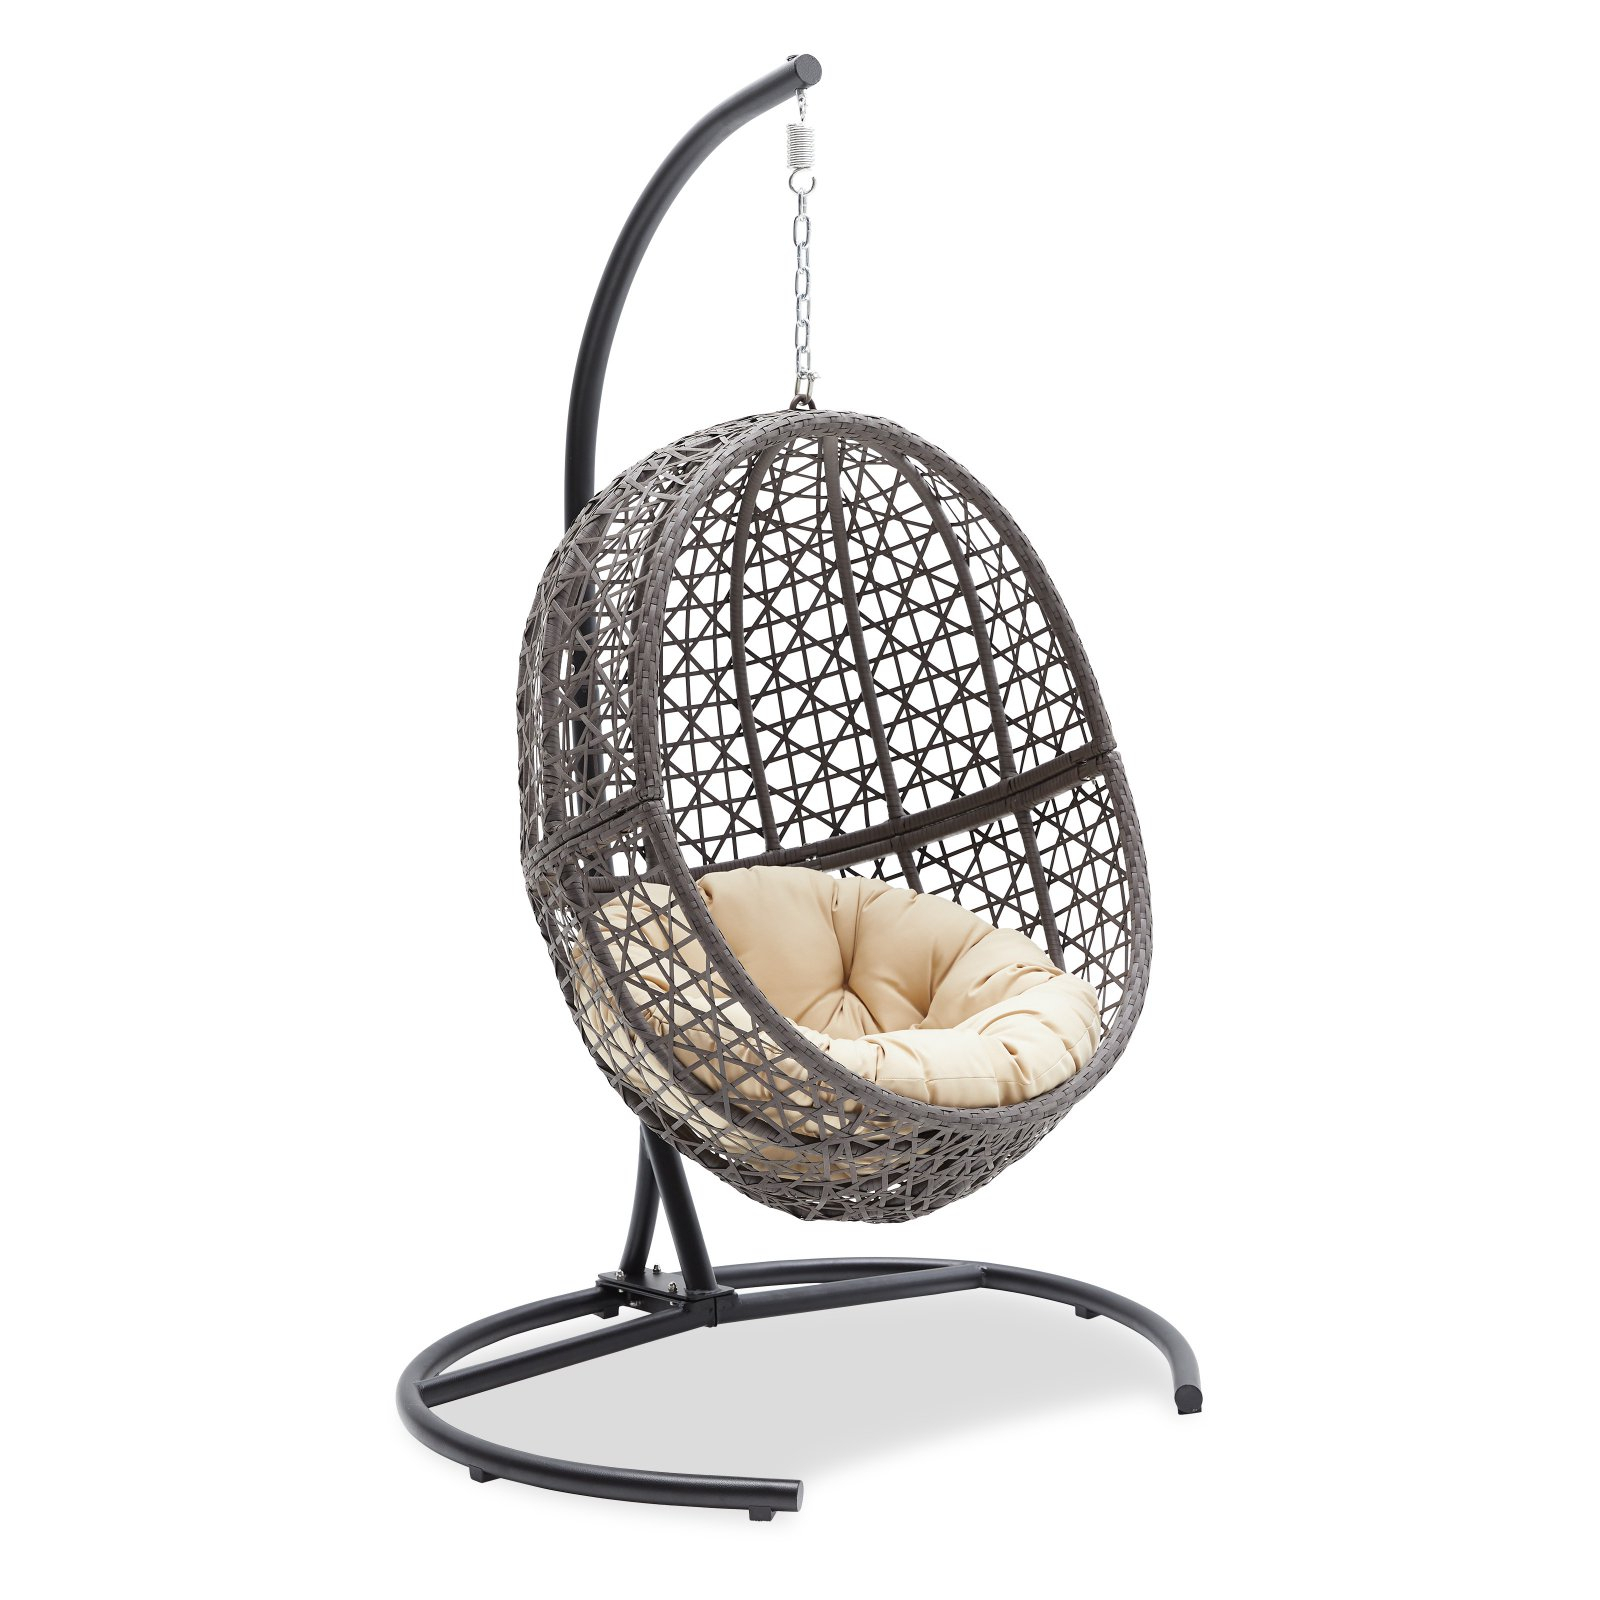 Belham Living Resin Wicker Hanging Egg Chair With Cushion Within Outdoor Wicker Plastic Tear Porch Swings With Stand (View 11 of 25)